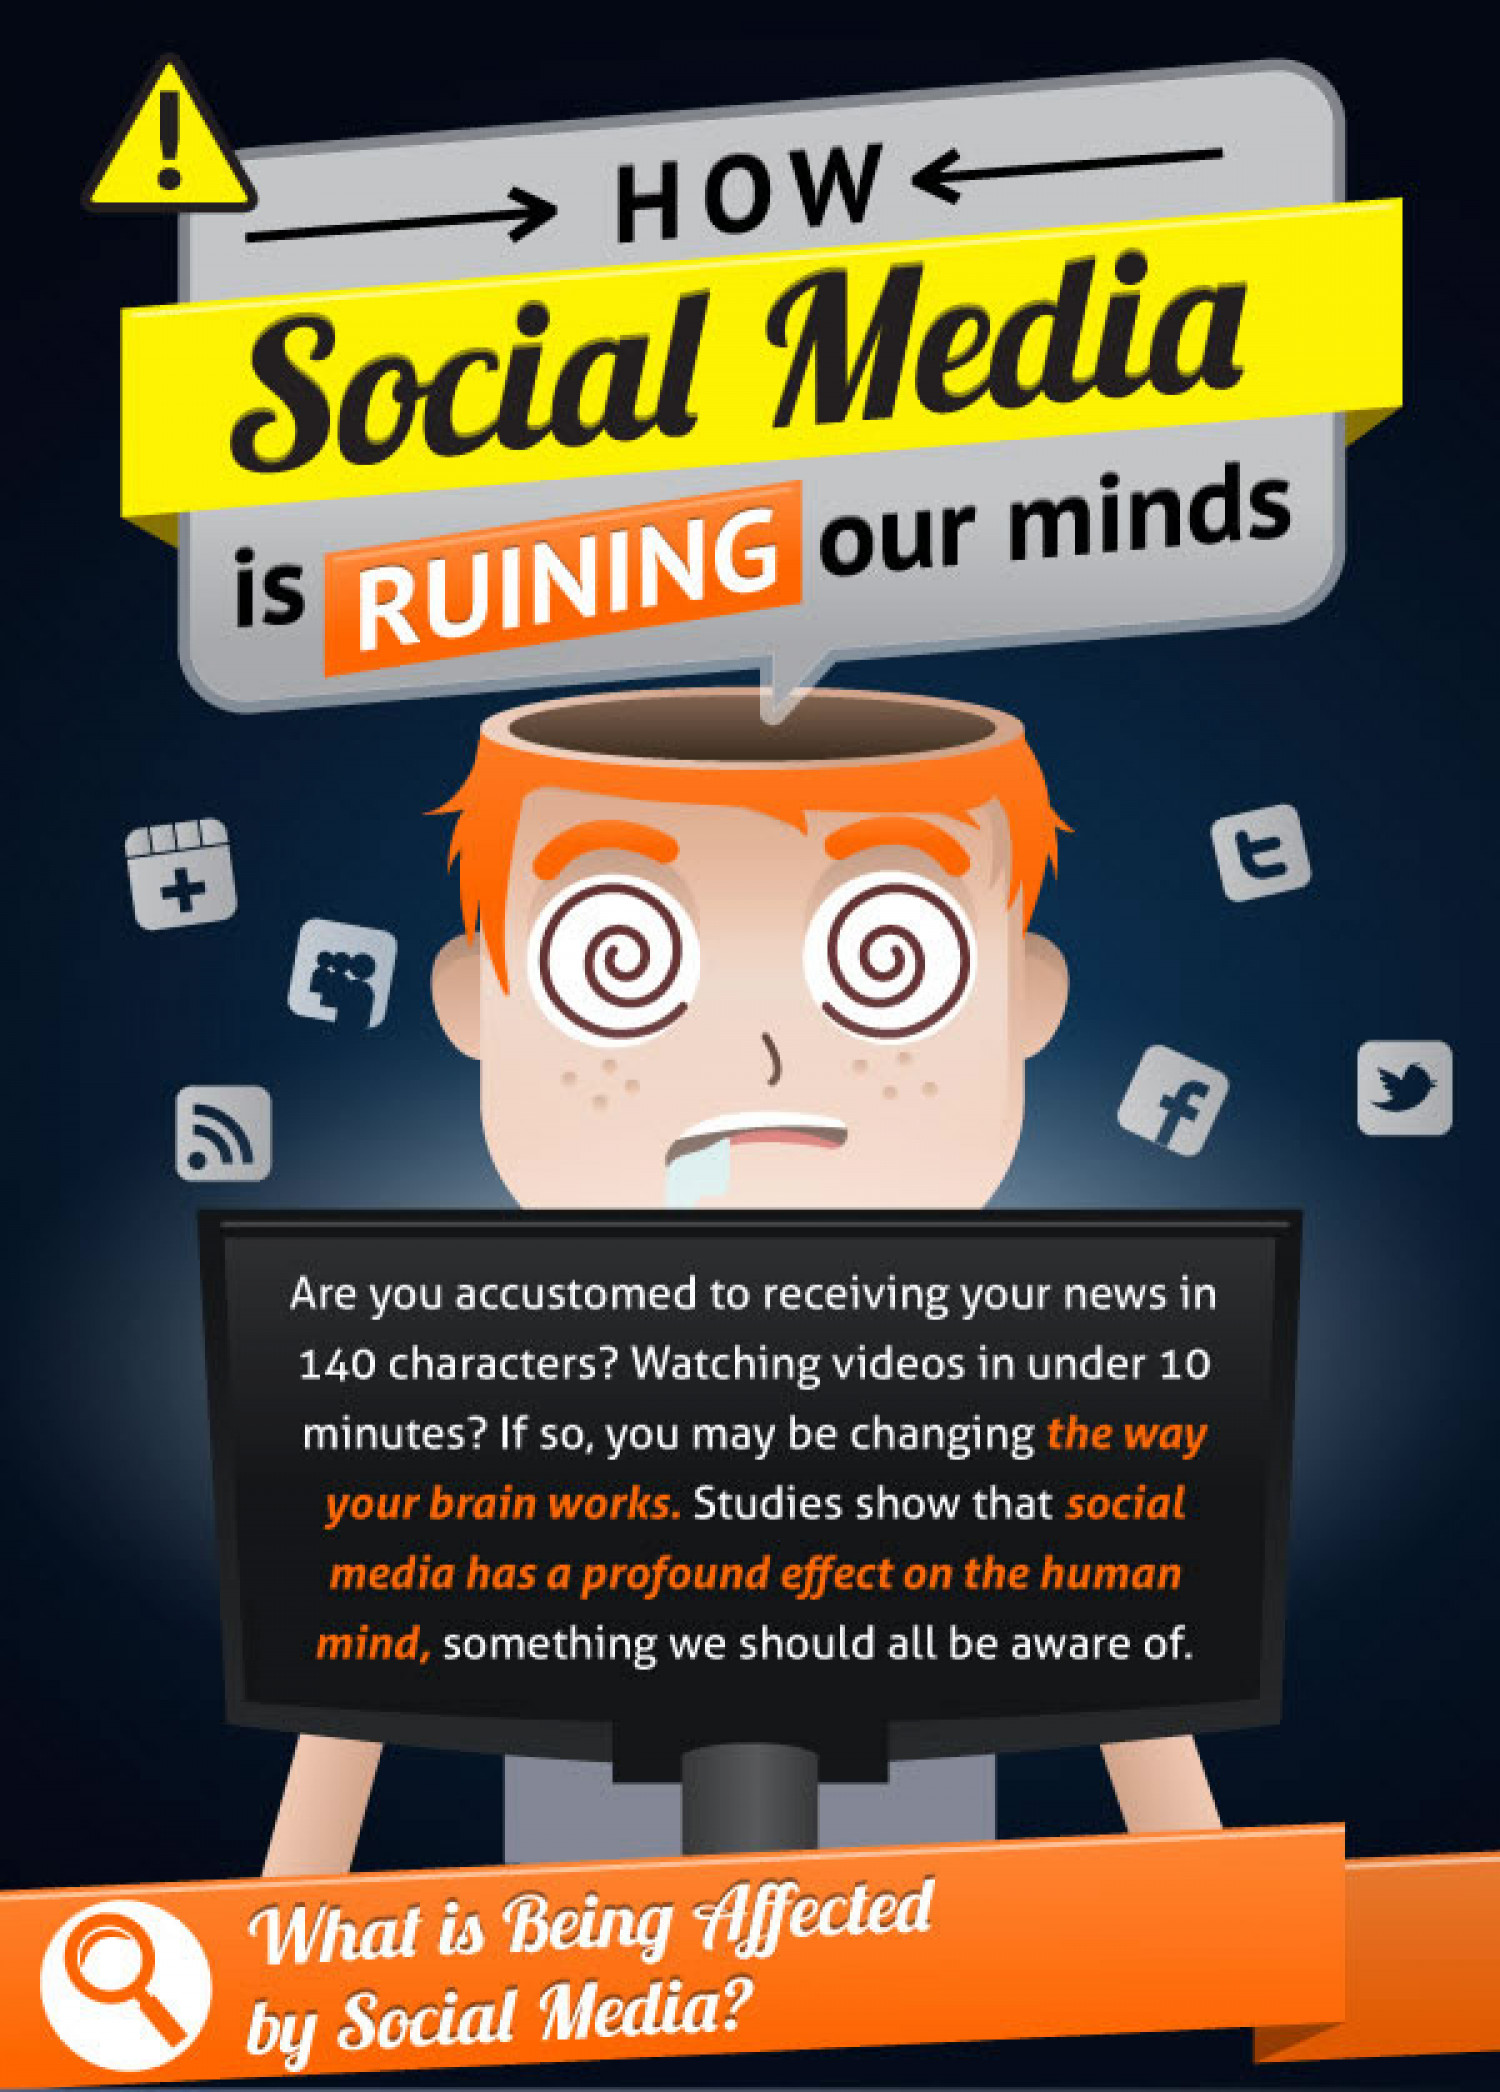 How Social Media is Ruining our Minds Infographic